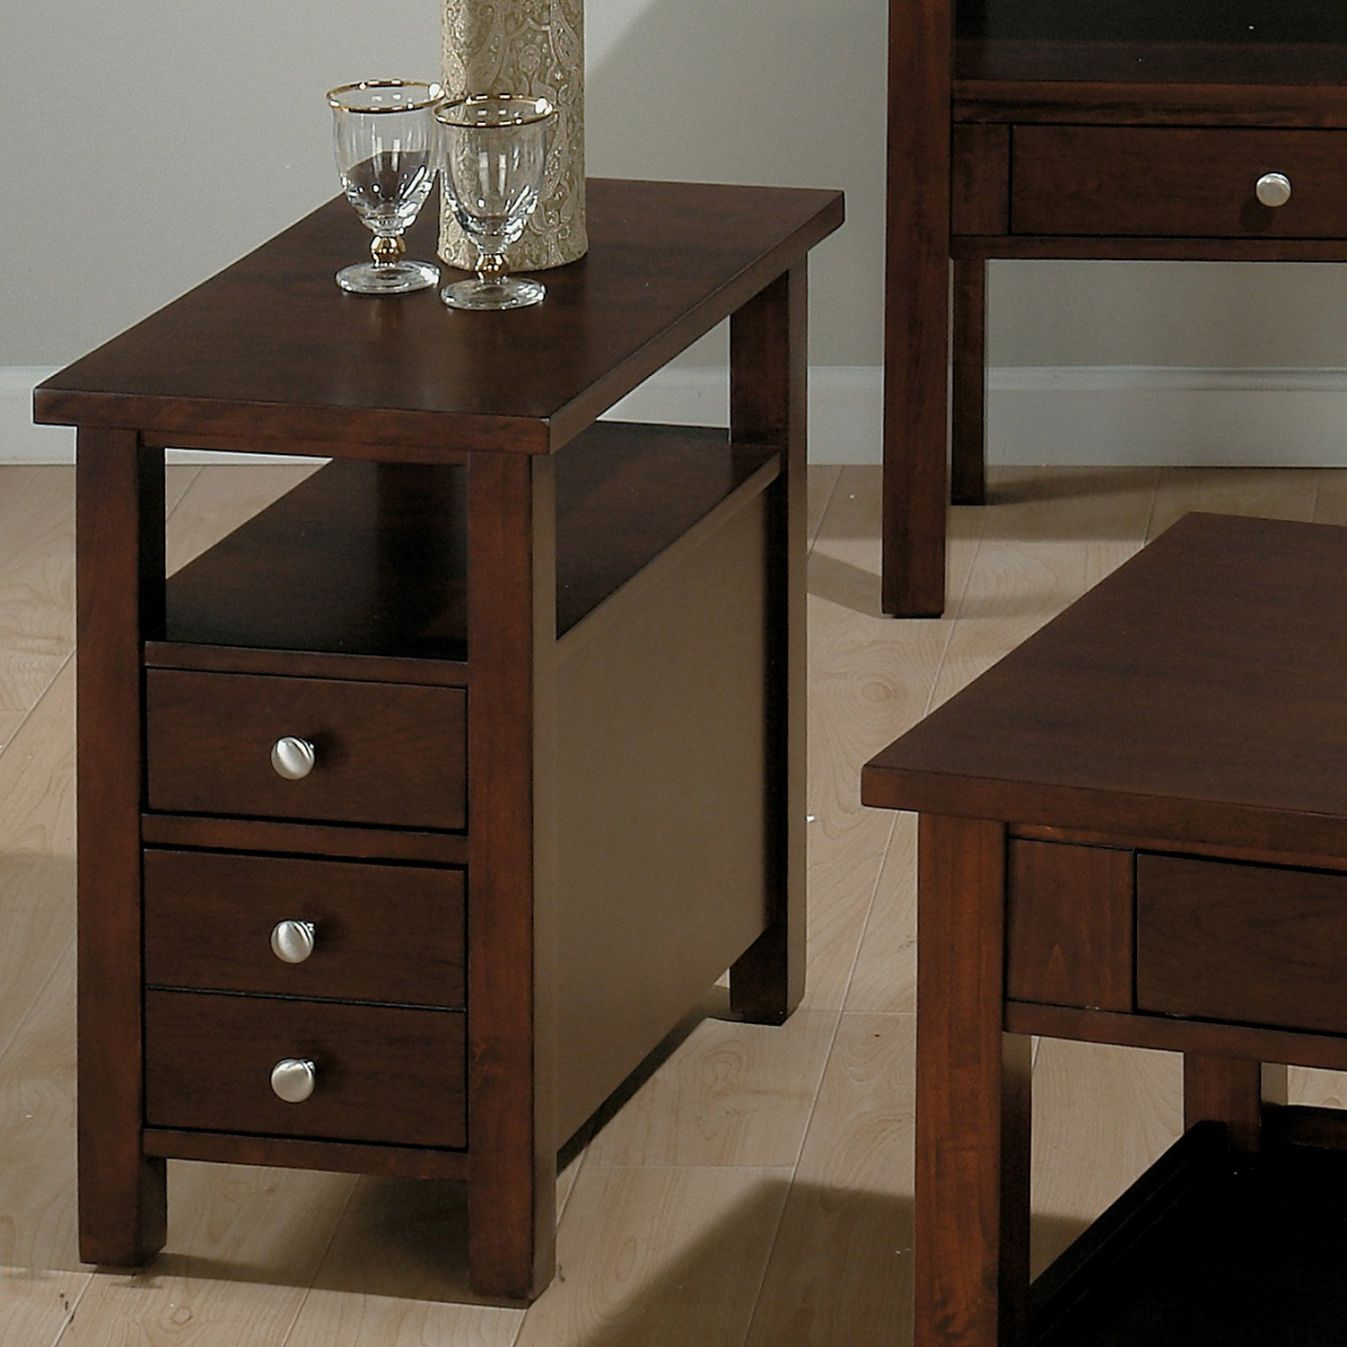 Dark Wood End Tables With Storage Diy Modern Furniture Check More At Http Www Nikkitsfun Com Dark Wood End Tables With Storage